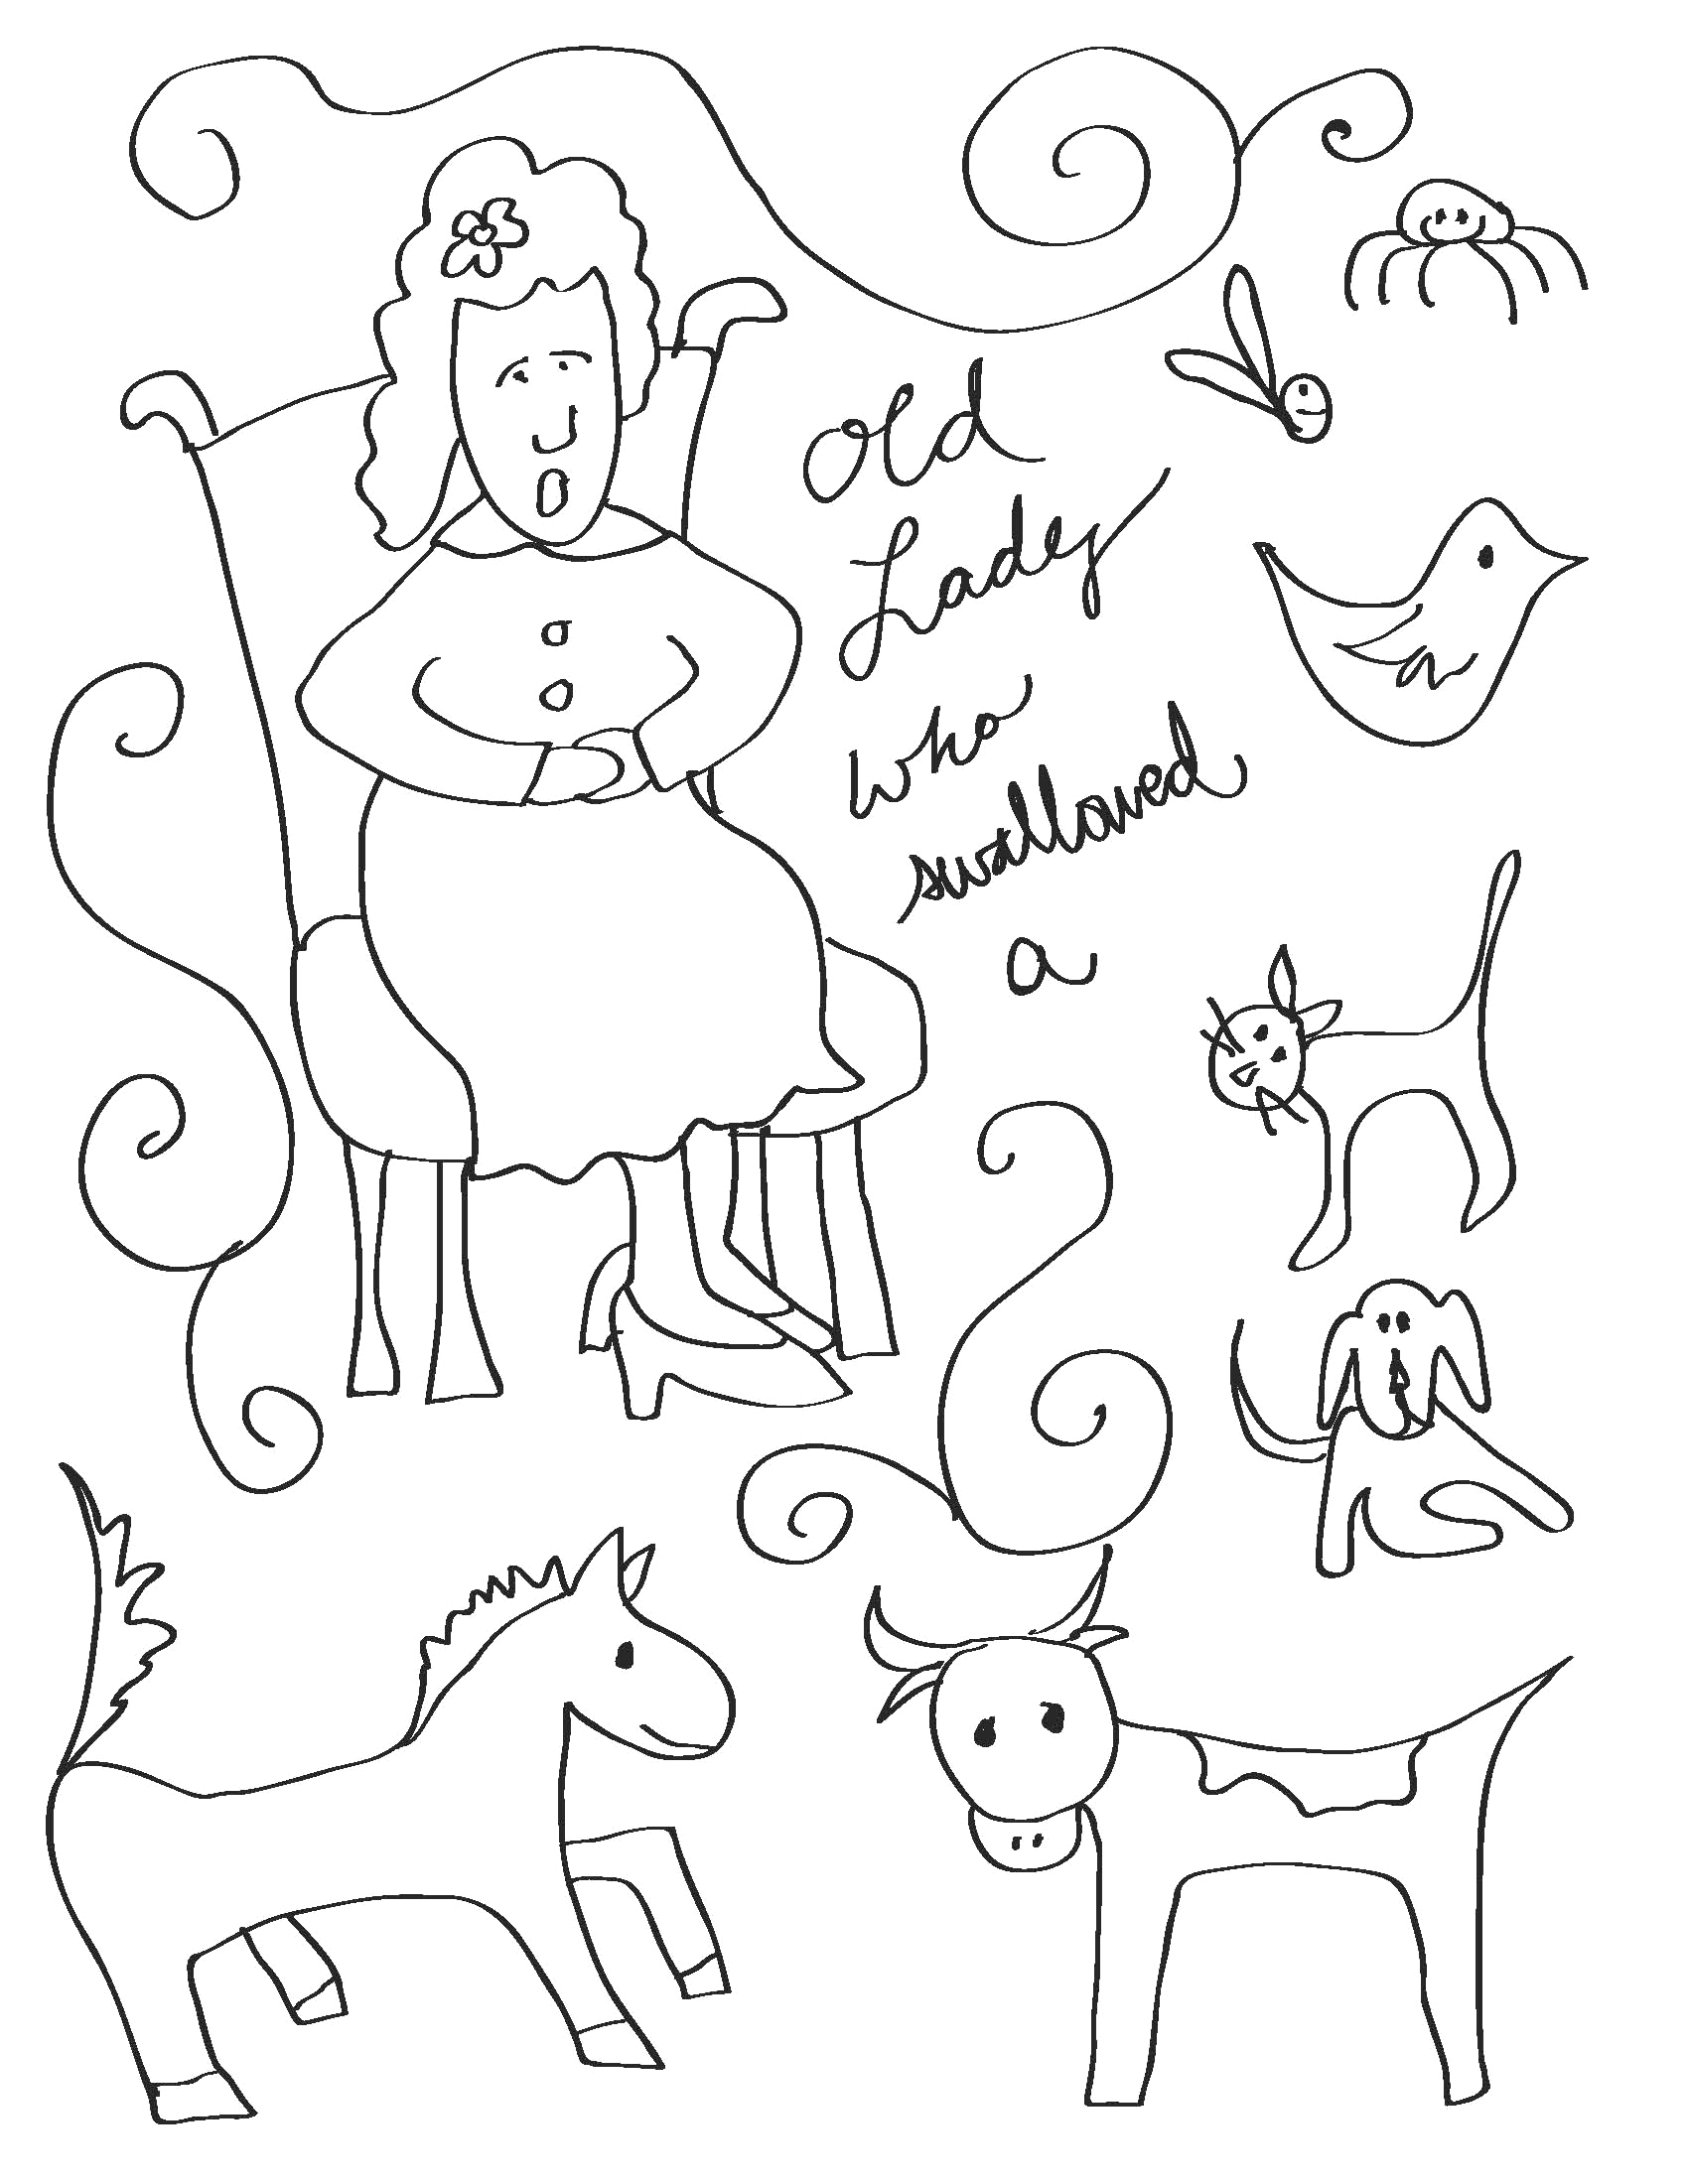 Old Lady who Swallowed A Fly Coloring Pages there Was An Old Lady who Swallowed A Fly Coloring Page